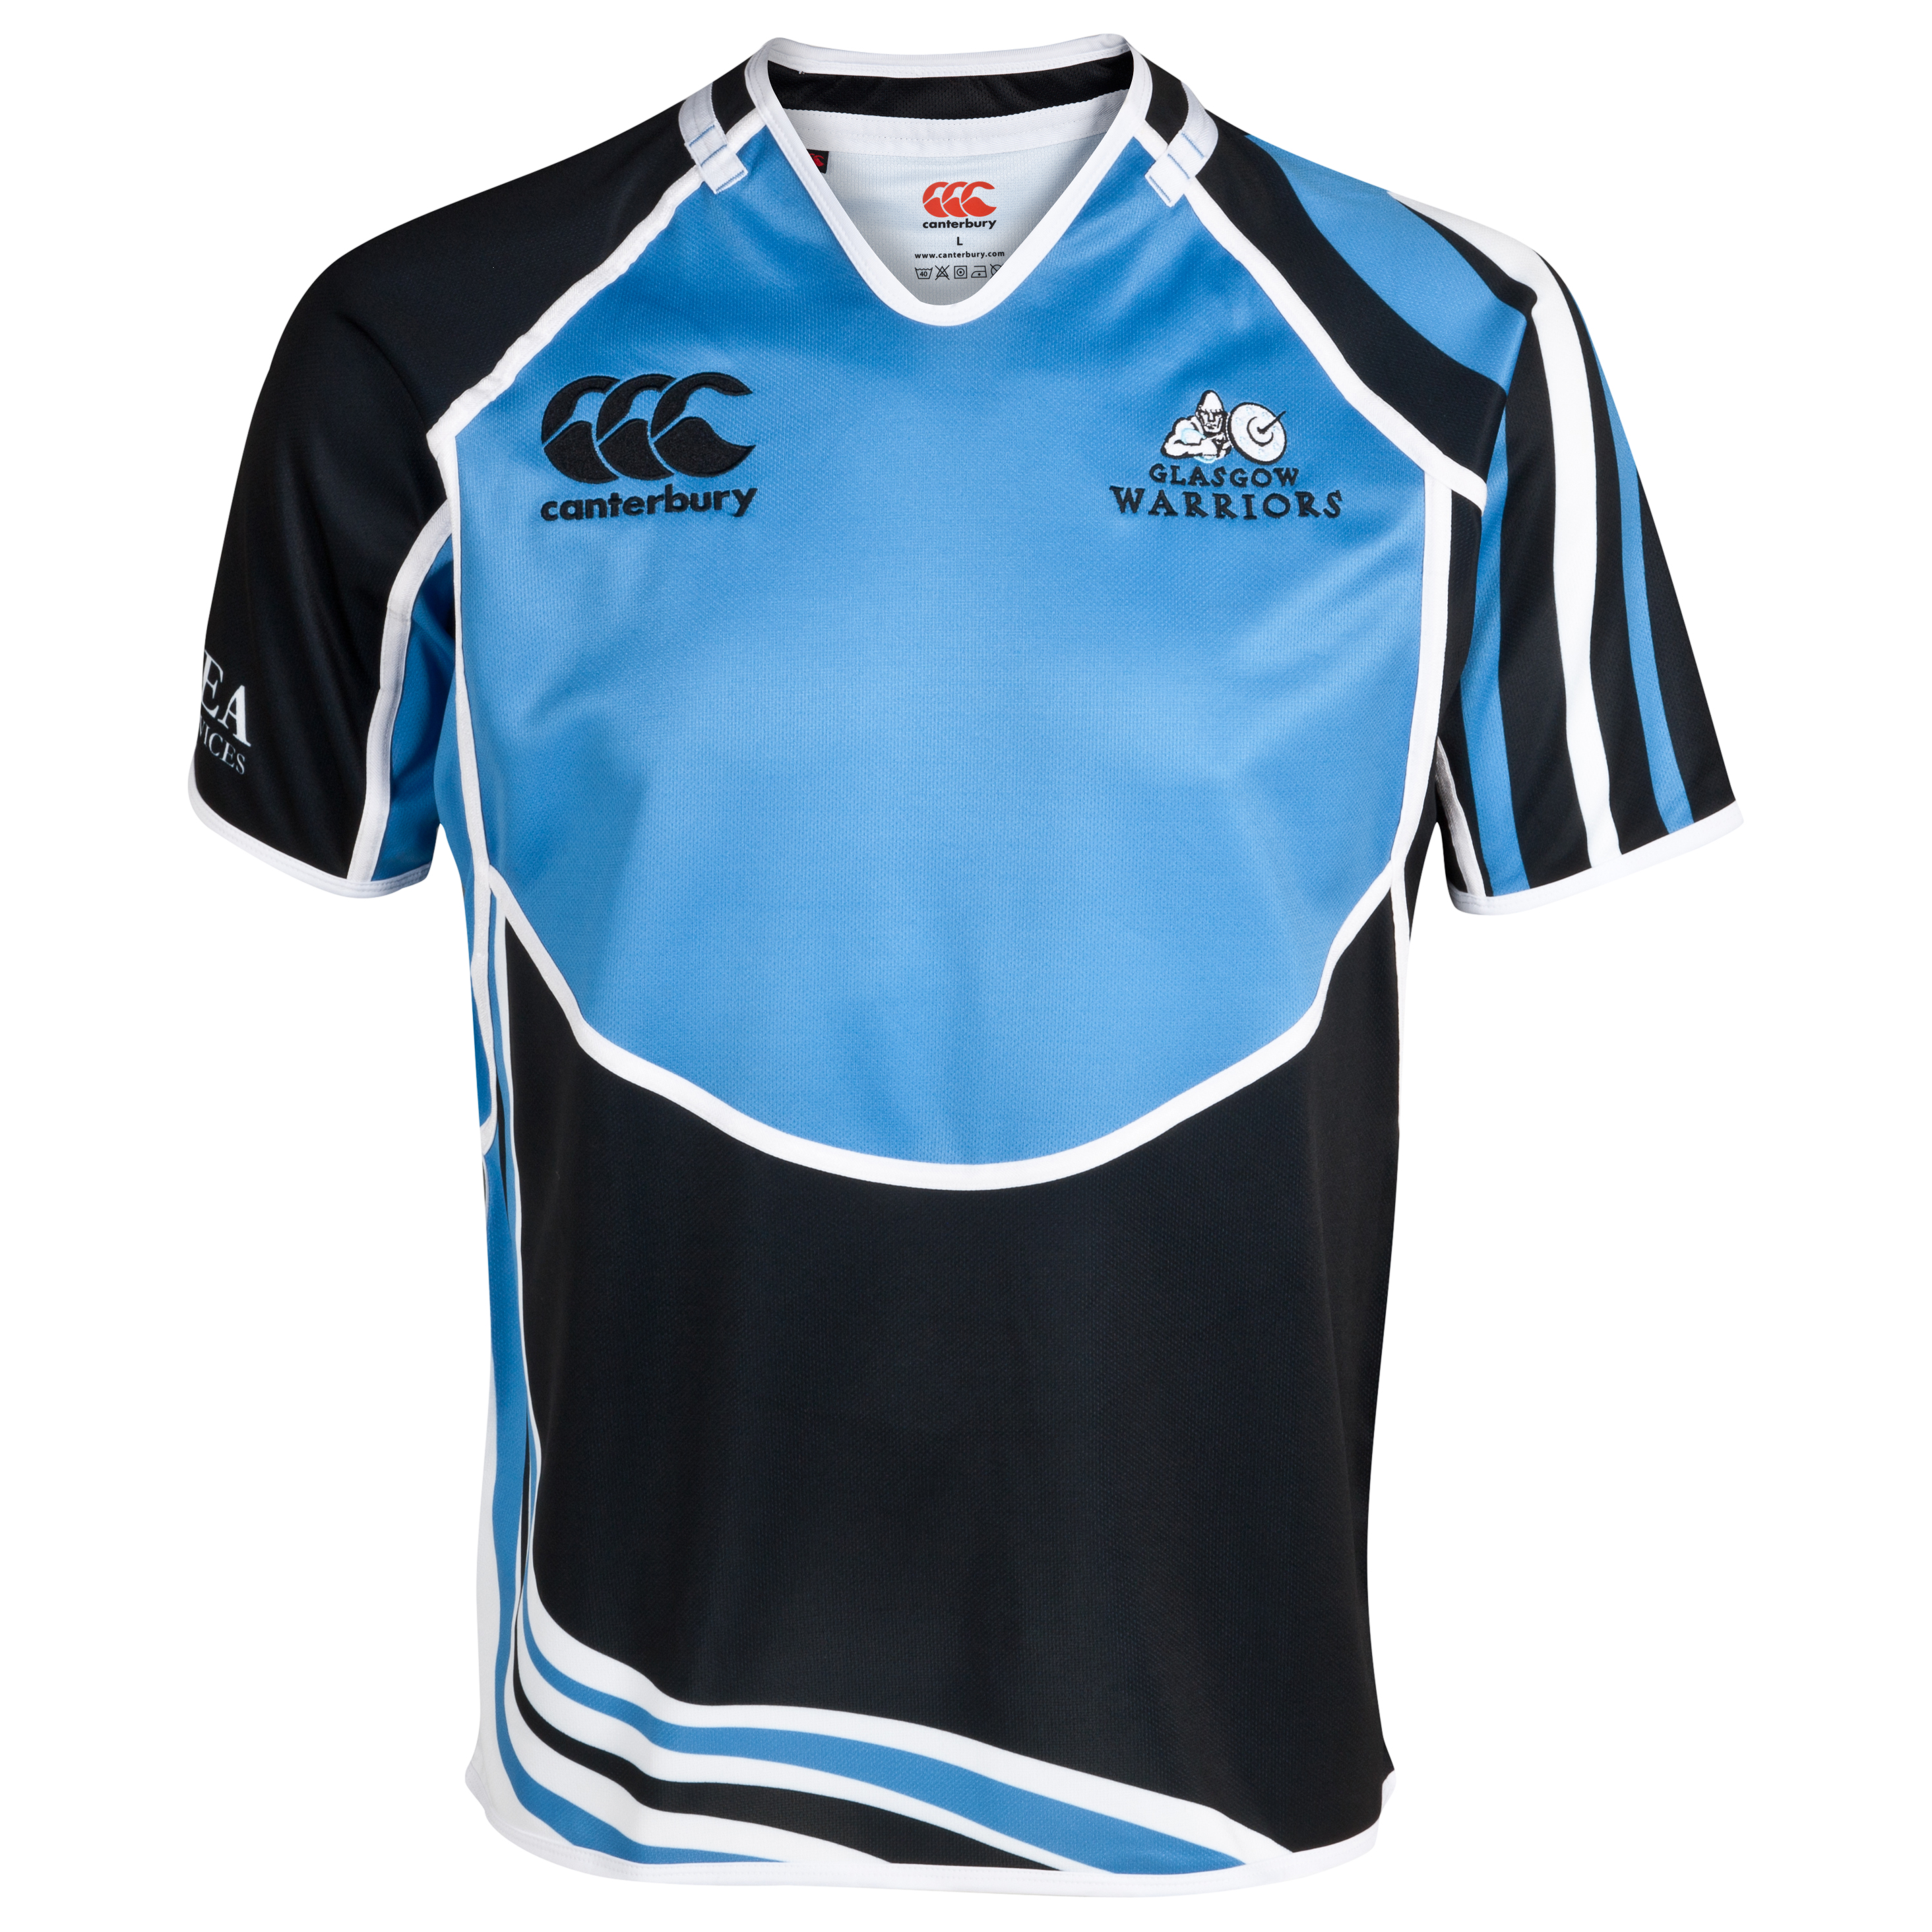 Glasgow Warriors Pro Home Shirt 2012/13